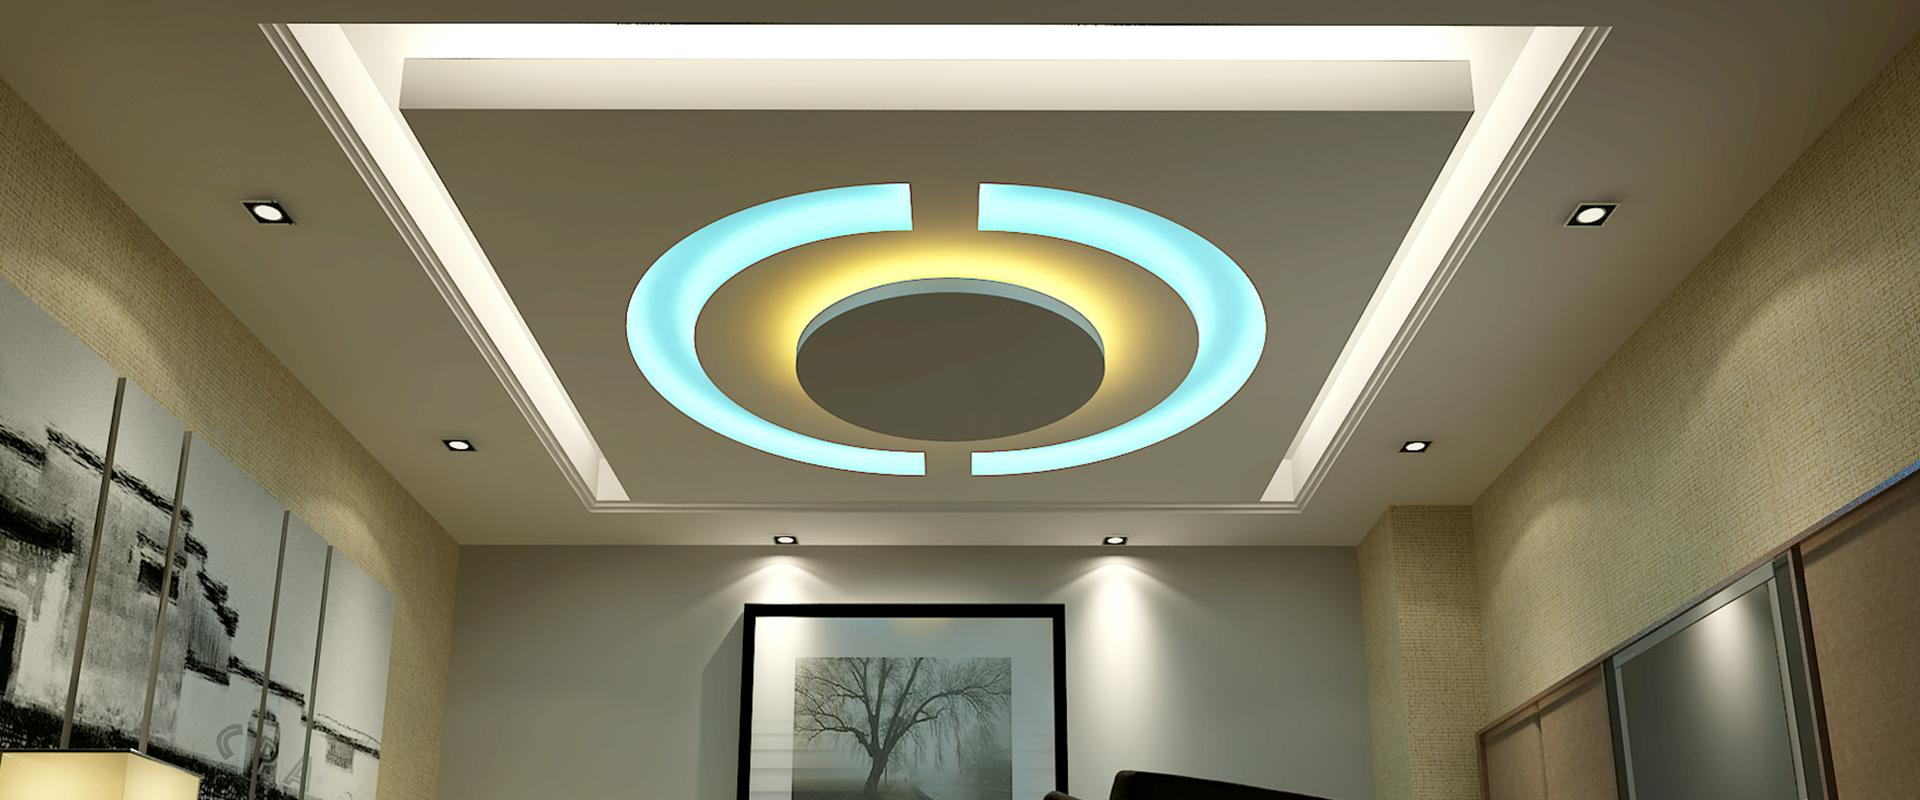 False ceiling be equipped decorative drop ceiling panels be equipped ceiling tiles be equipped false ceiling designs for small living room